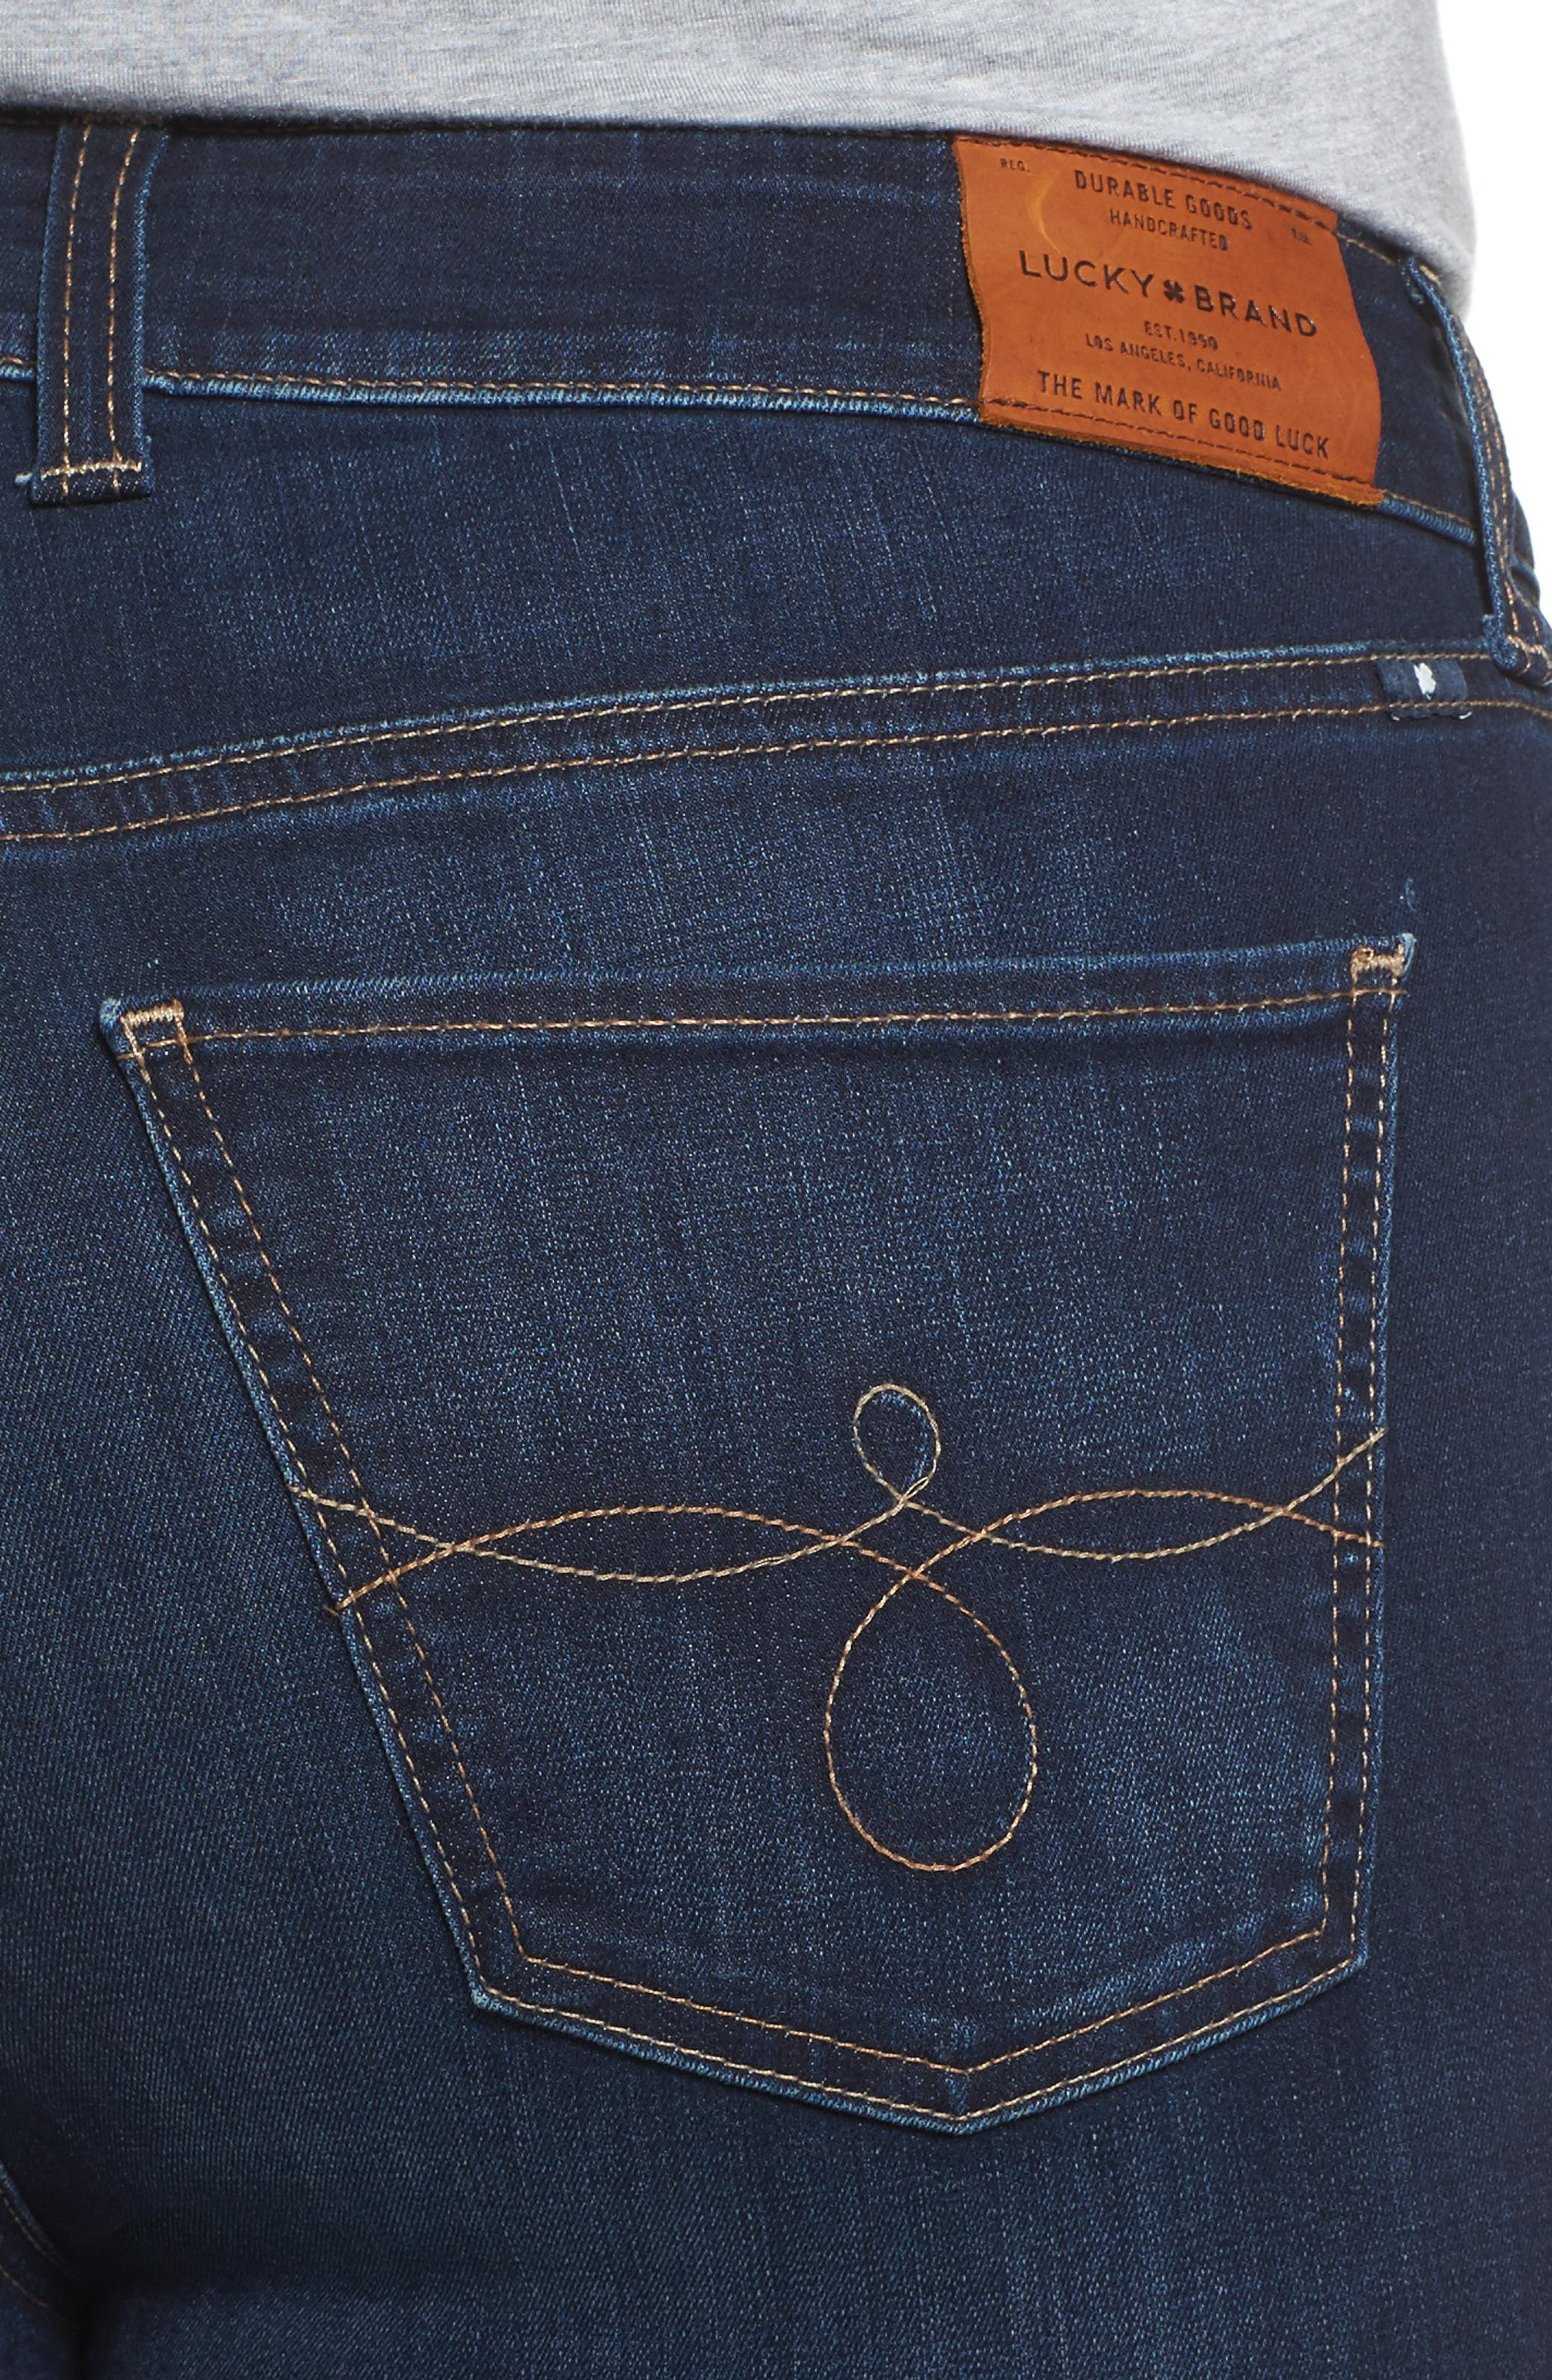 Ginger Bootcut Jeans,                             Alternate thumbnail 4, color,                             Twilight Blue